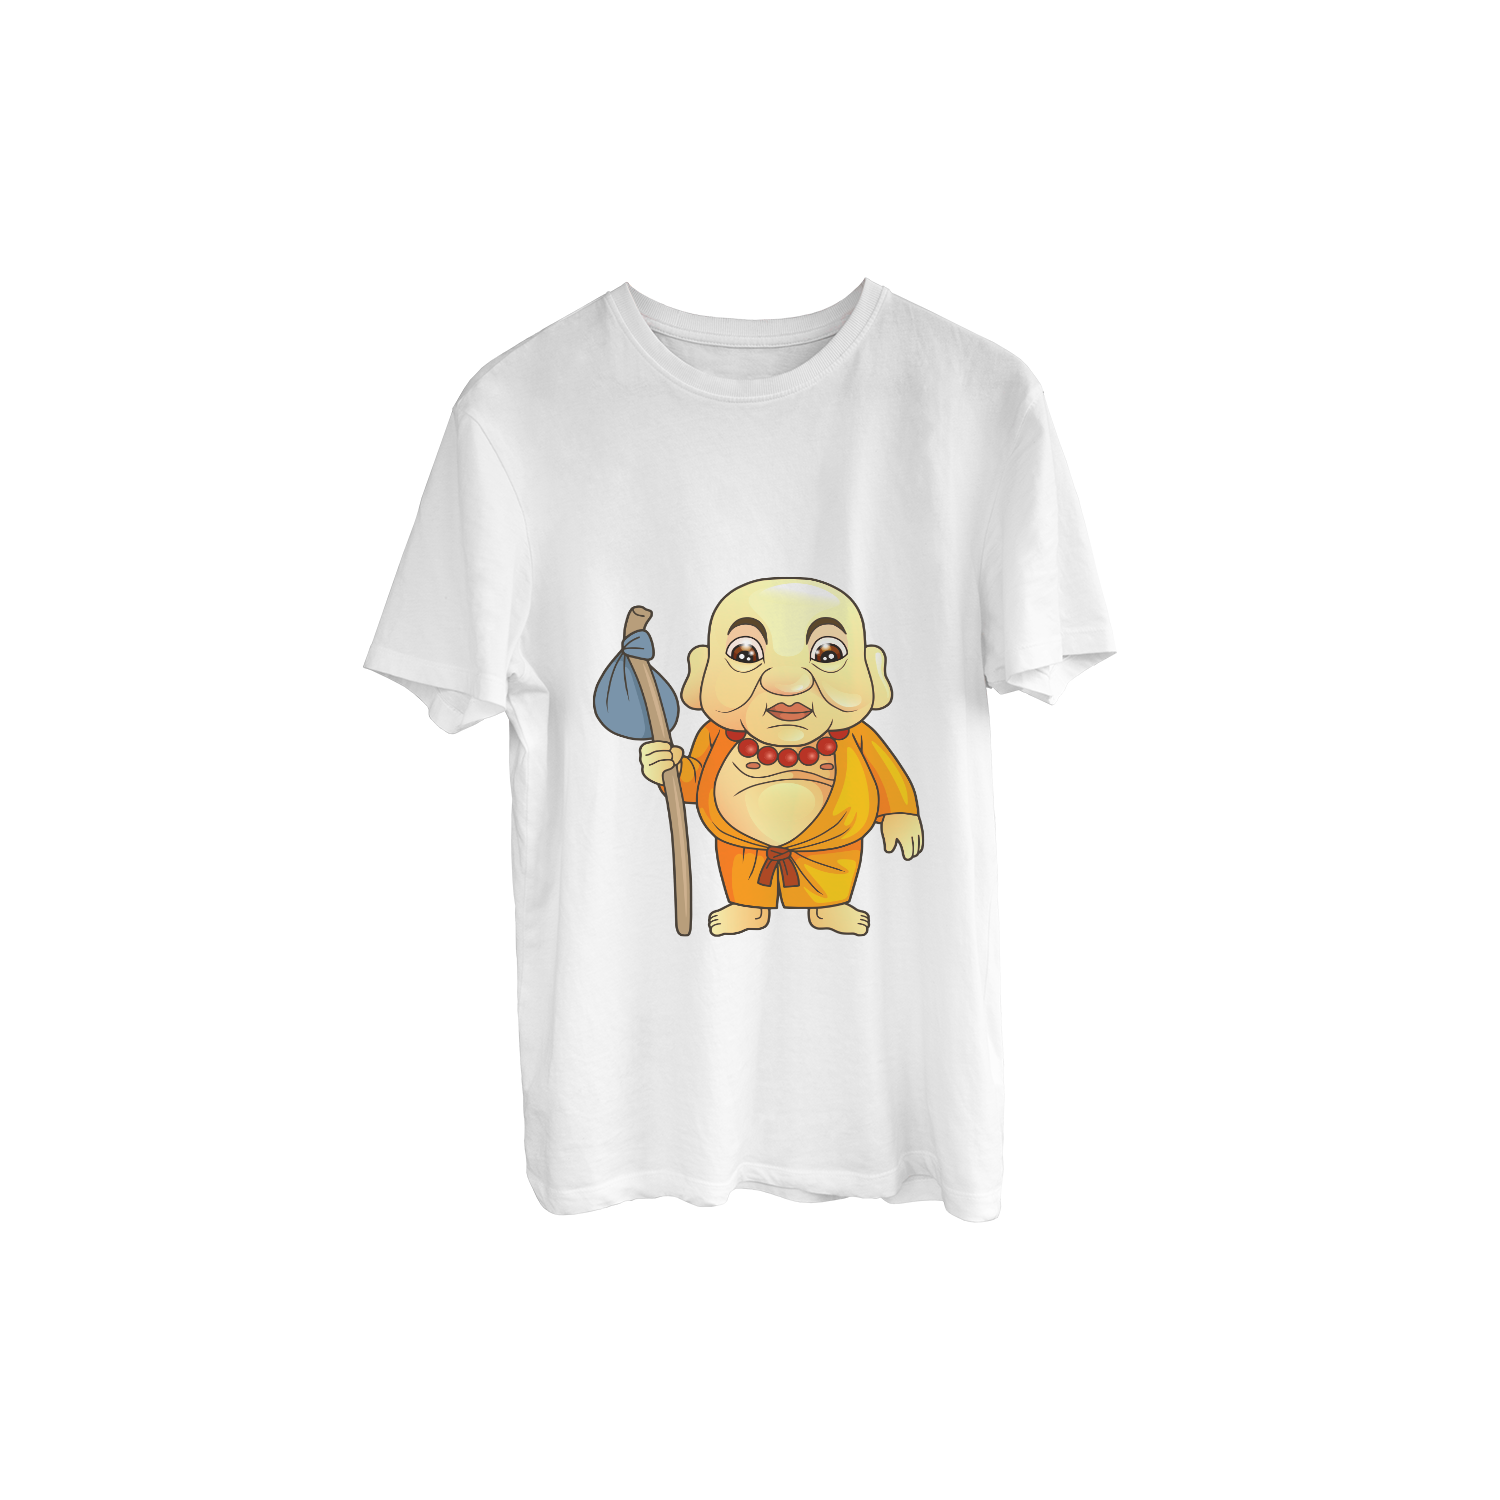 Funny Monk Cartoon Print T-Shirt